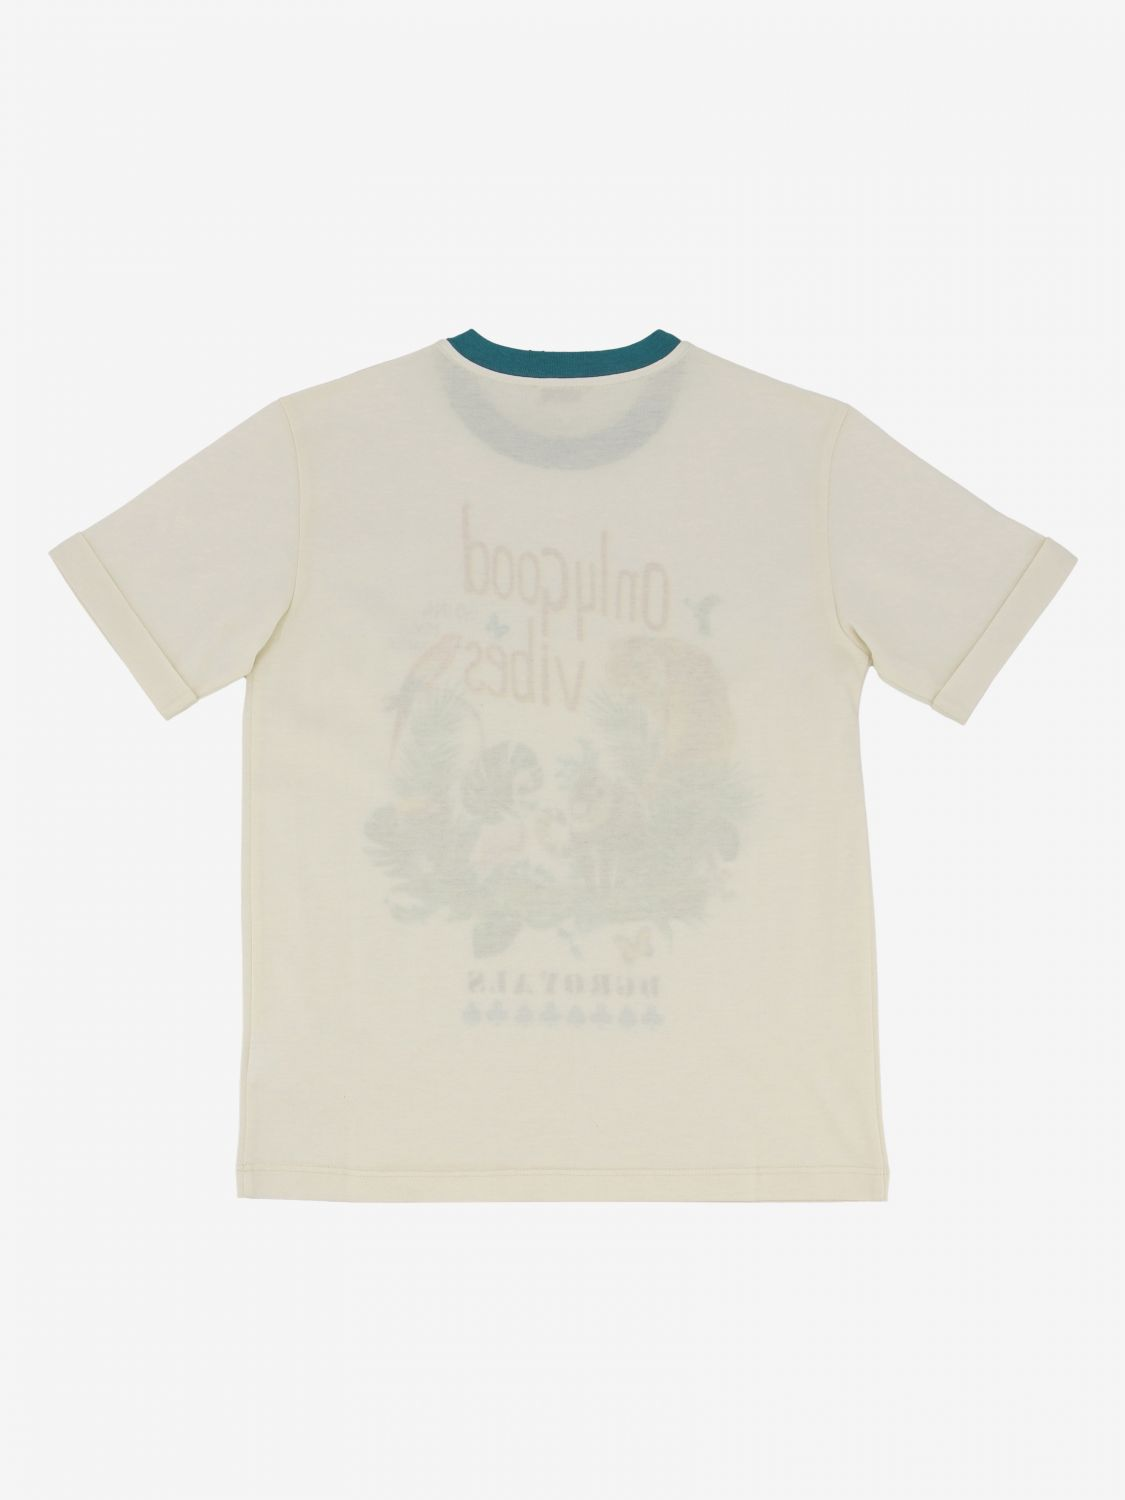 T-shirt Dolce & Gabbana: T-shirt Dolce & Gabbana con stampa only good vibes bianco 2